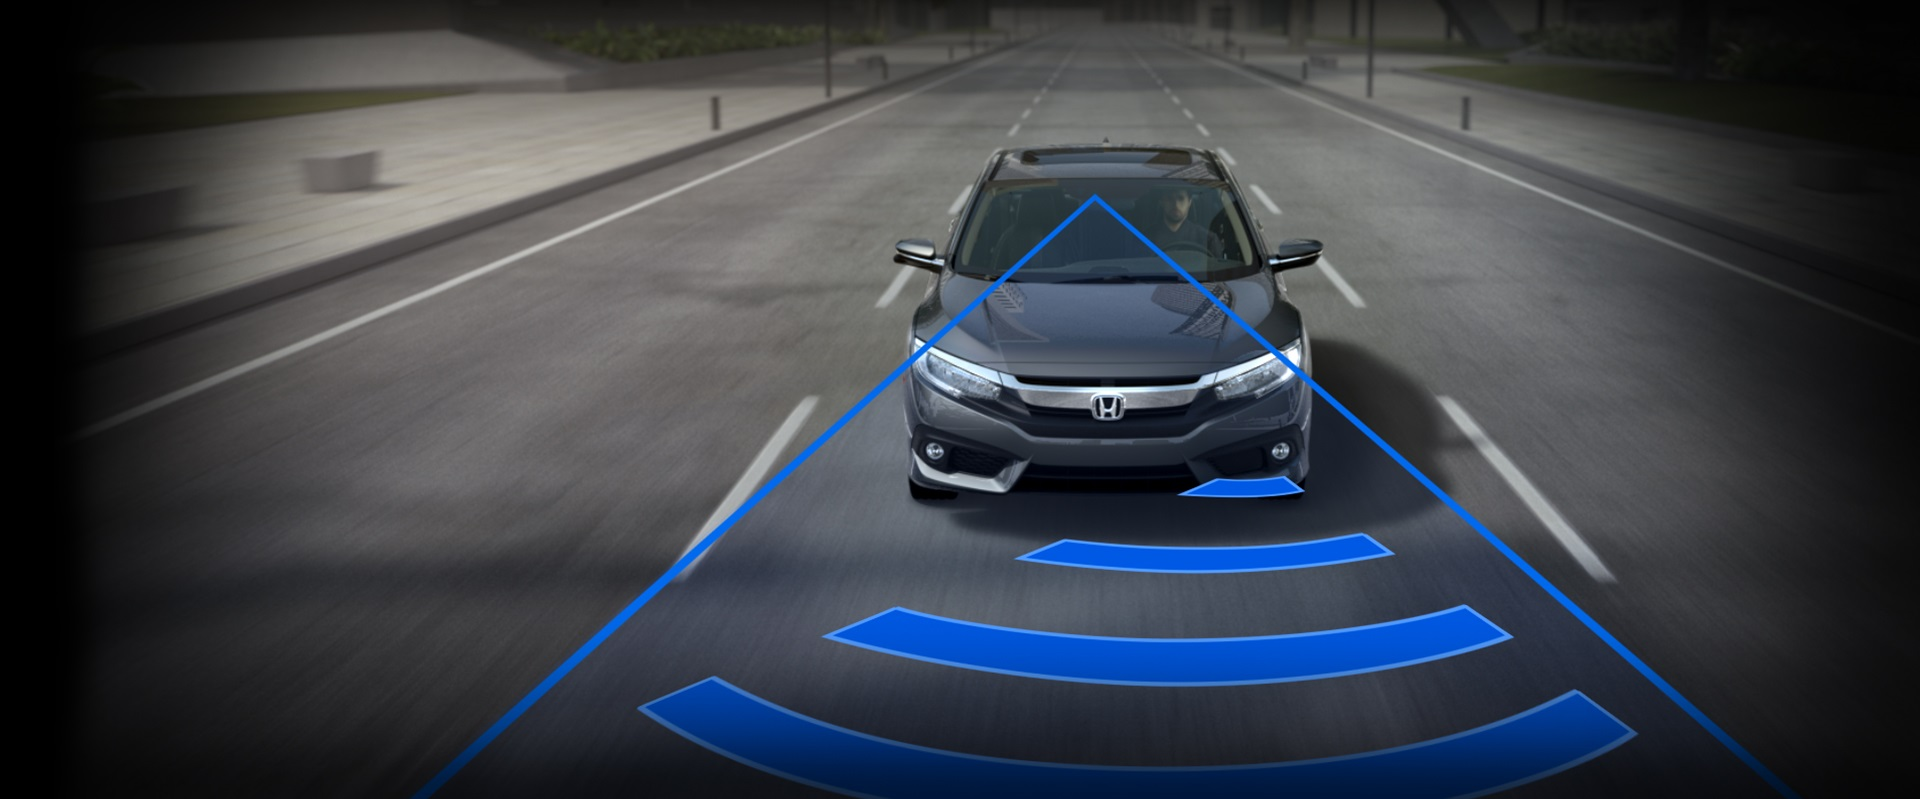 2016 Honda Civic Collision Mitigation Braking System